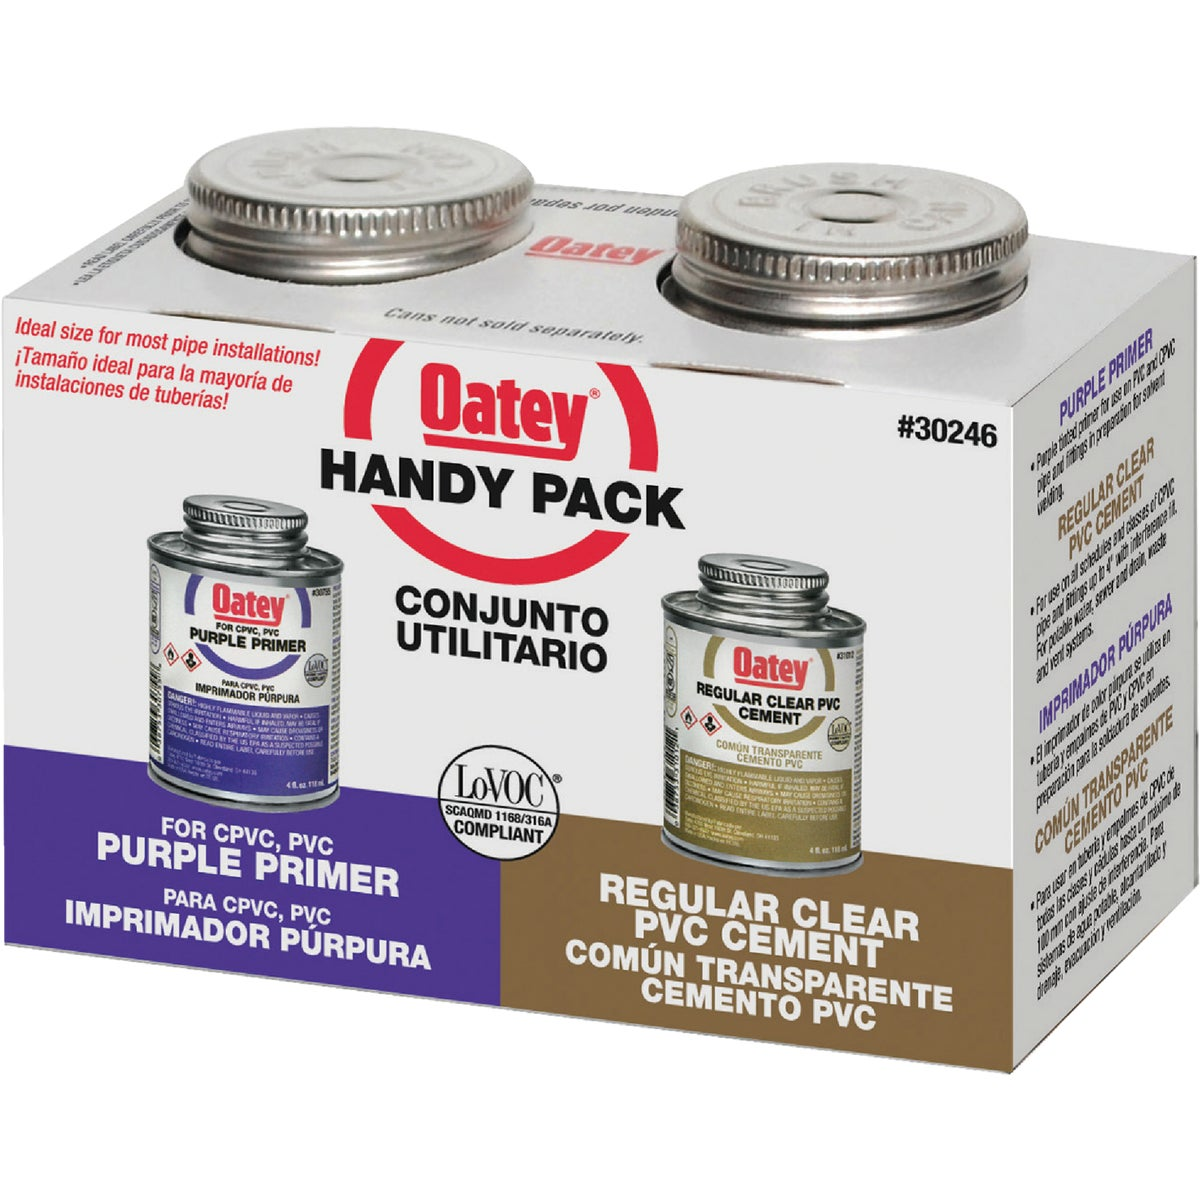 SOLVENT CEMENT KIT - 30246 by Oatey Scs